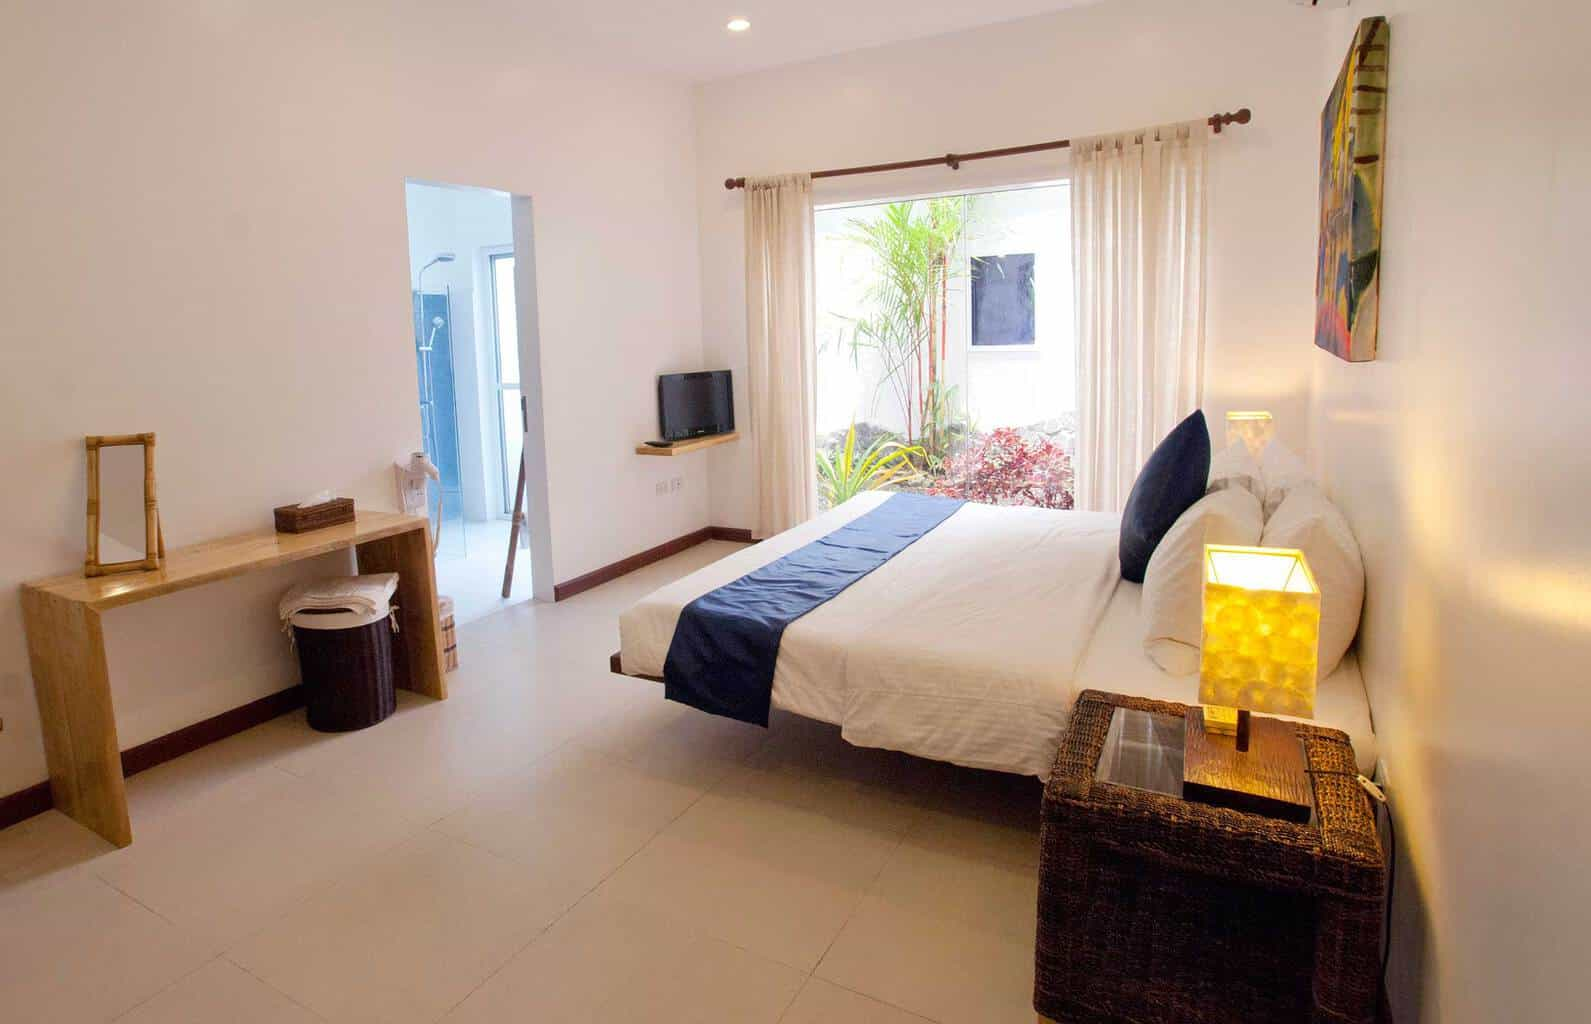 Philippines Diving holidays Atmosphere Apartment Bedroom